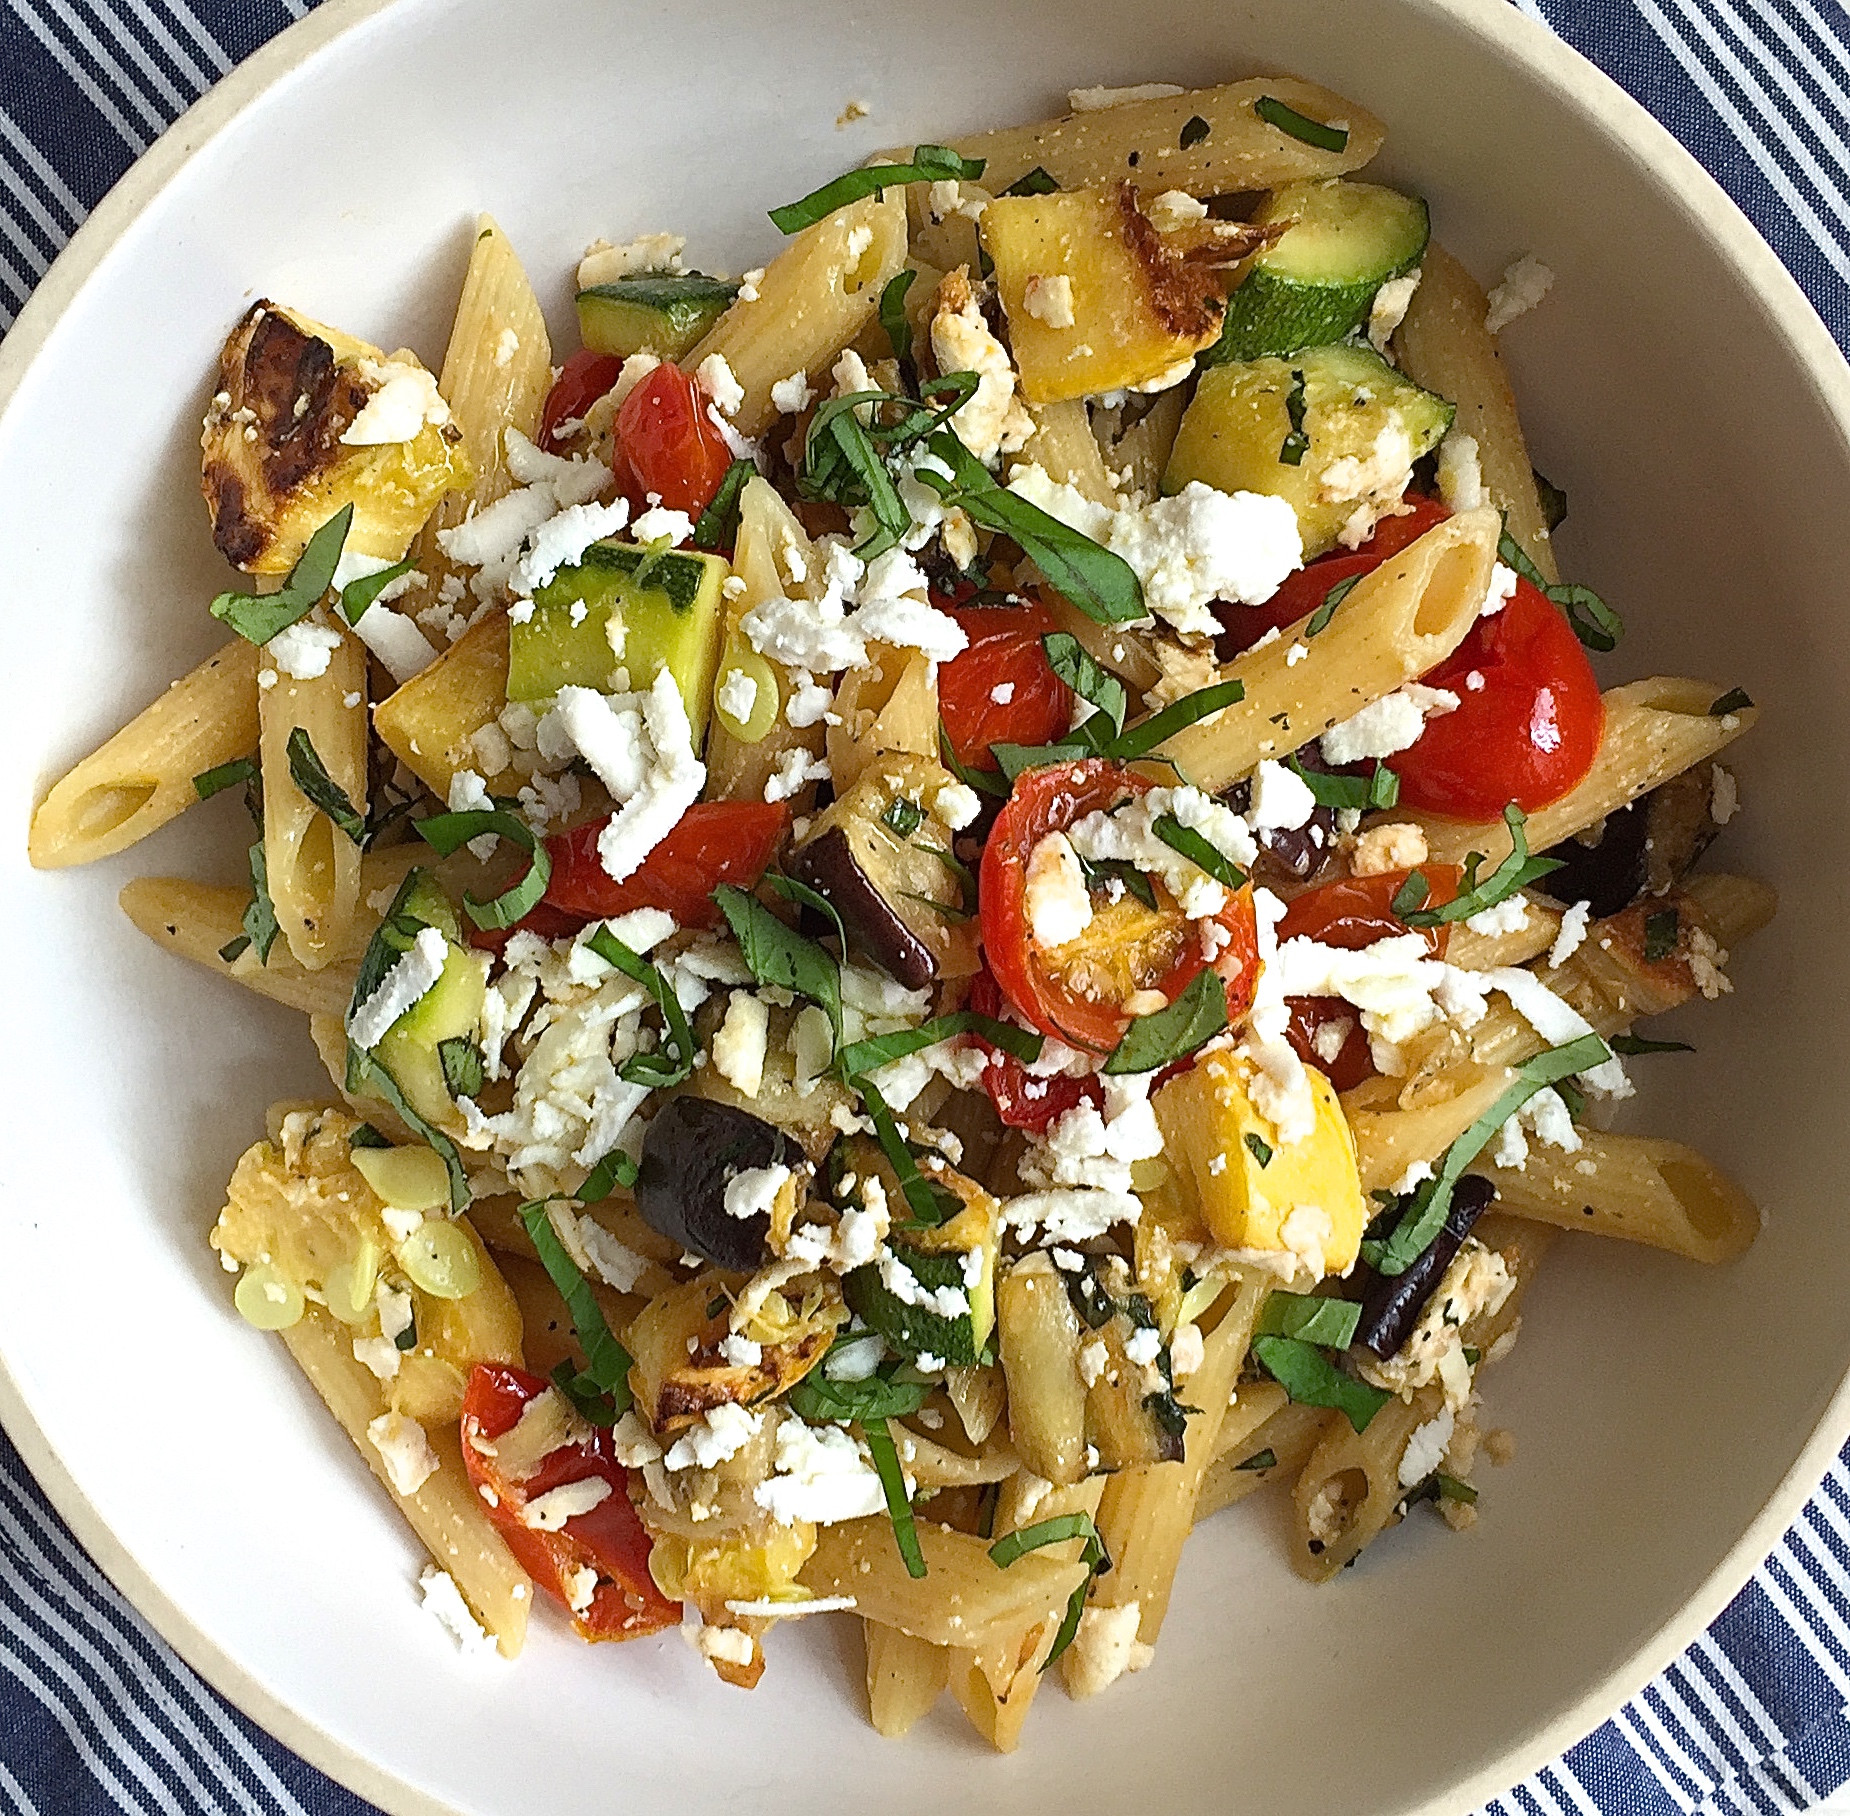 Roasted Summer Vegetables Recipe  Penne with Roasted Summer Ve ables and Ricotta Salata